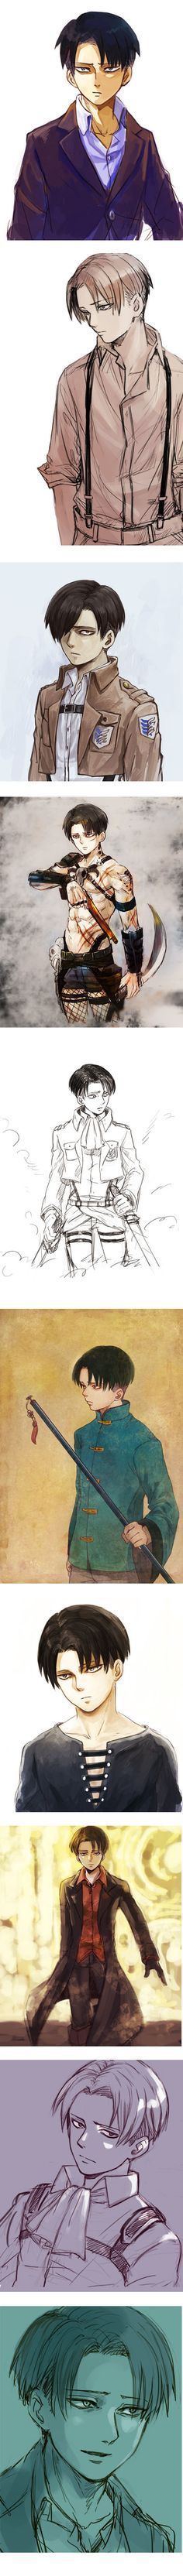 Levi || http://www.pixiv.net/member.php?id=4066390 [please do not remove this caption with the source]